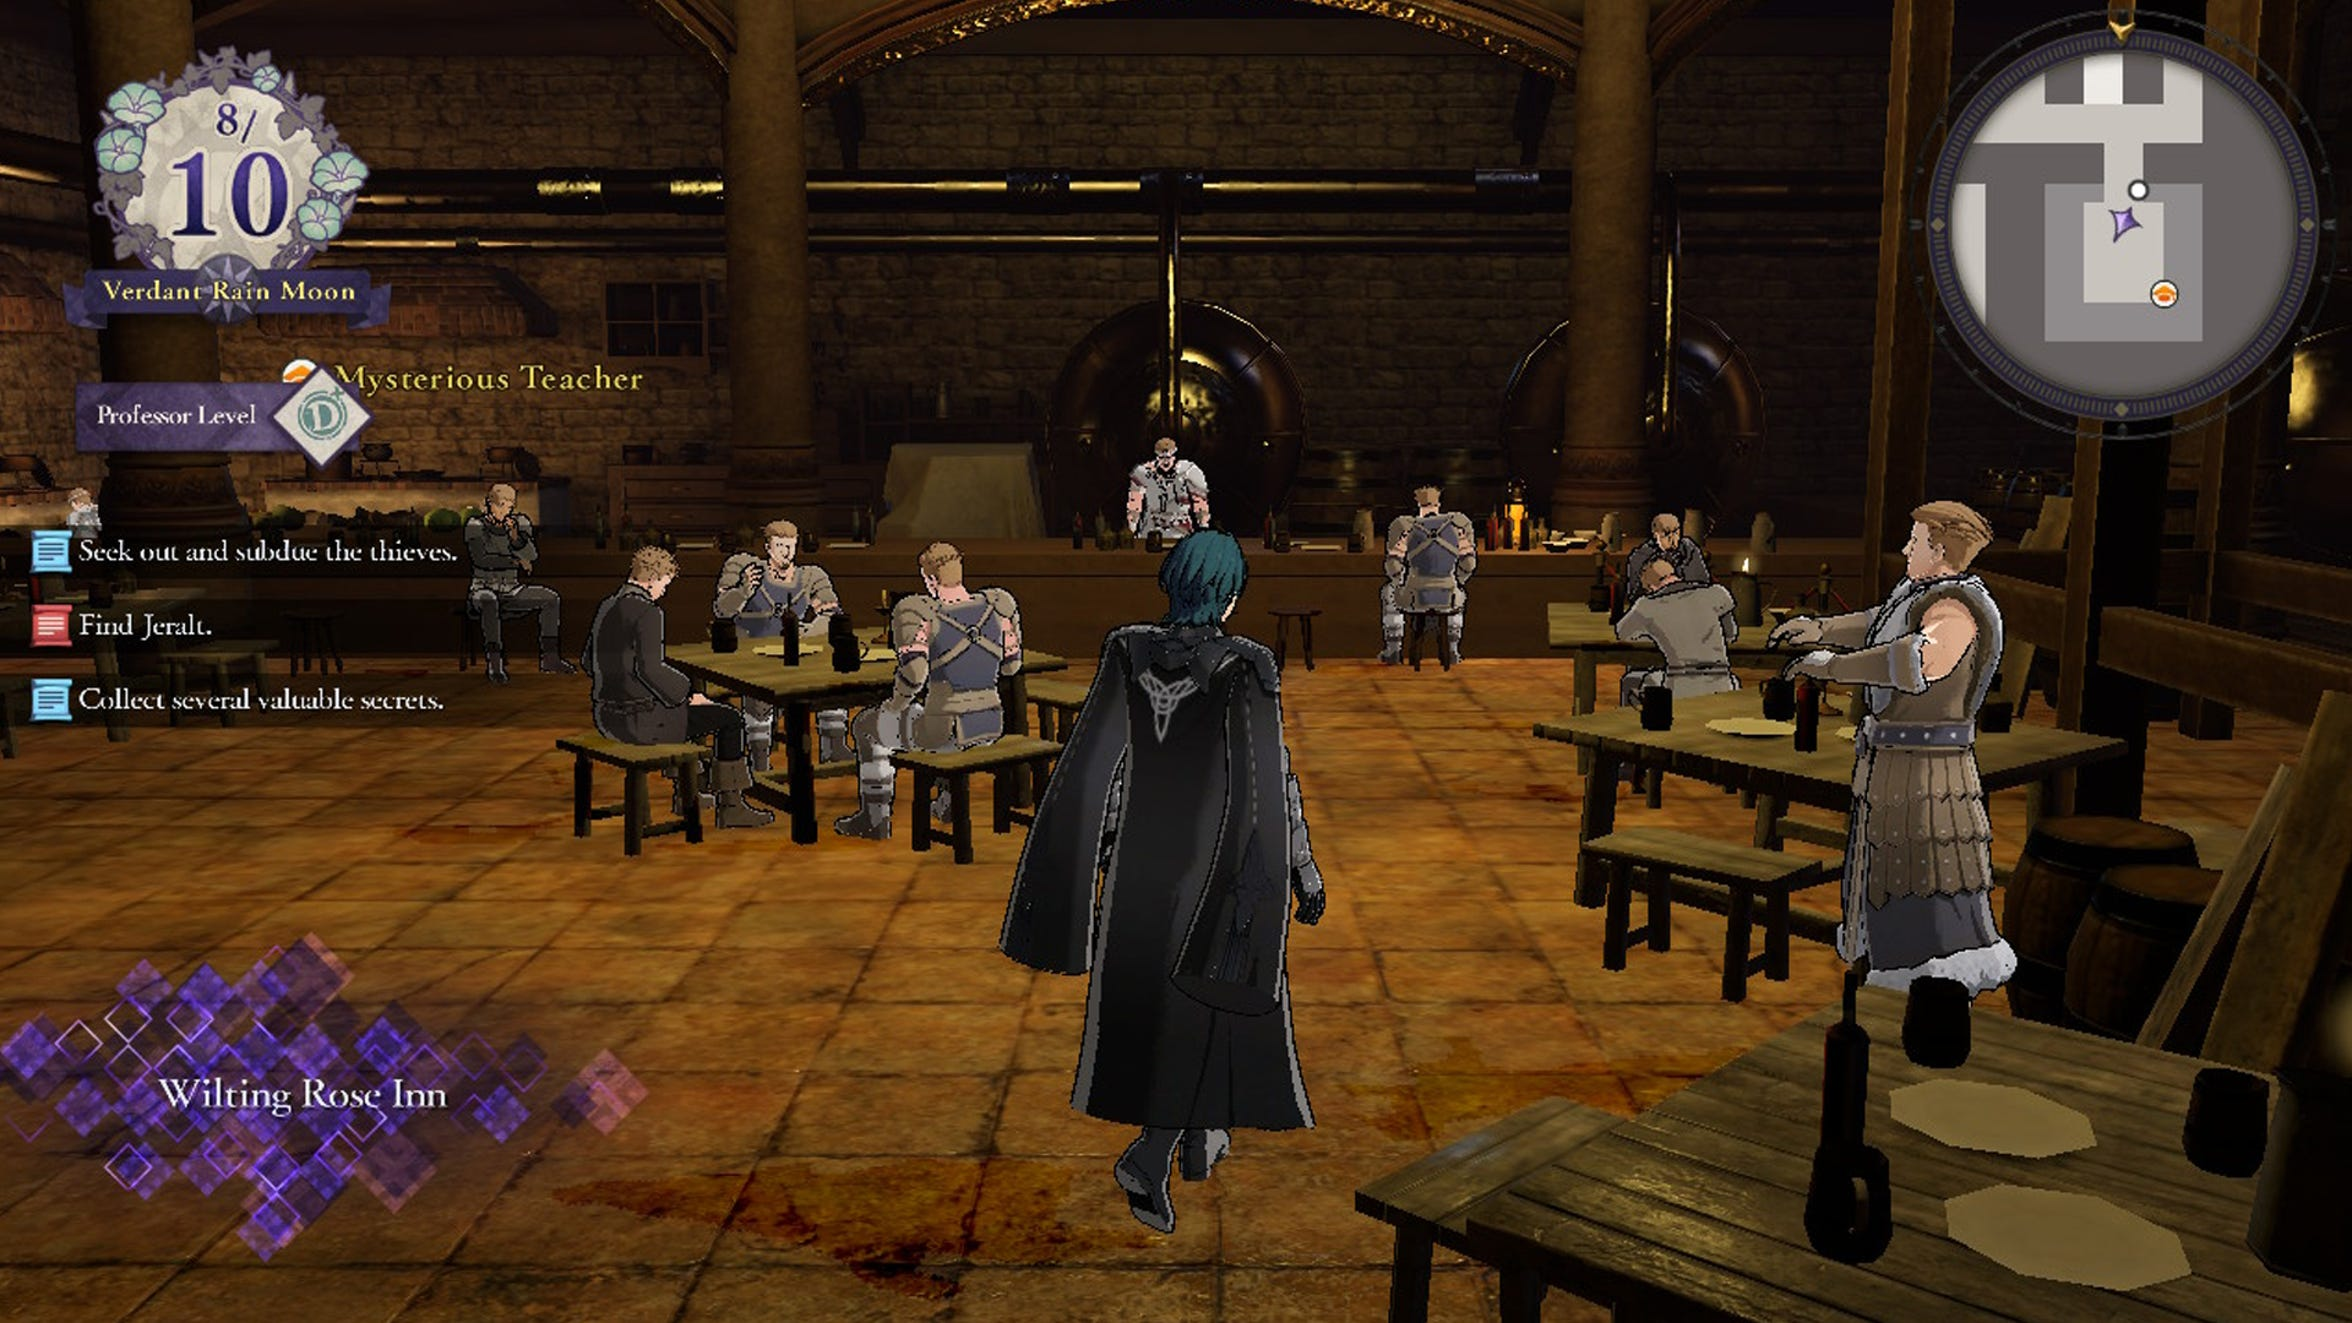 The Wilting Rose Inn in Fire Emblem: Three Houses Cindered Shadows DLC.